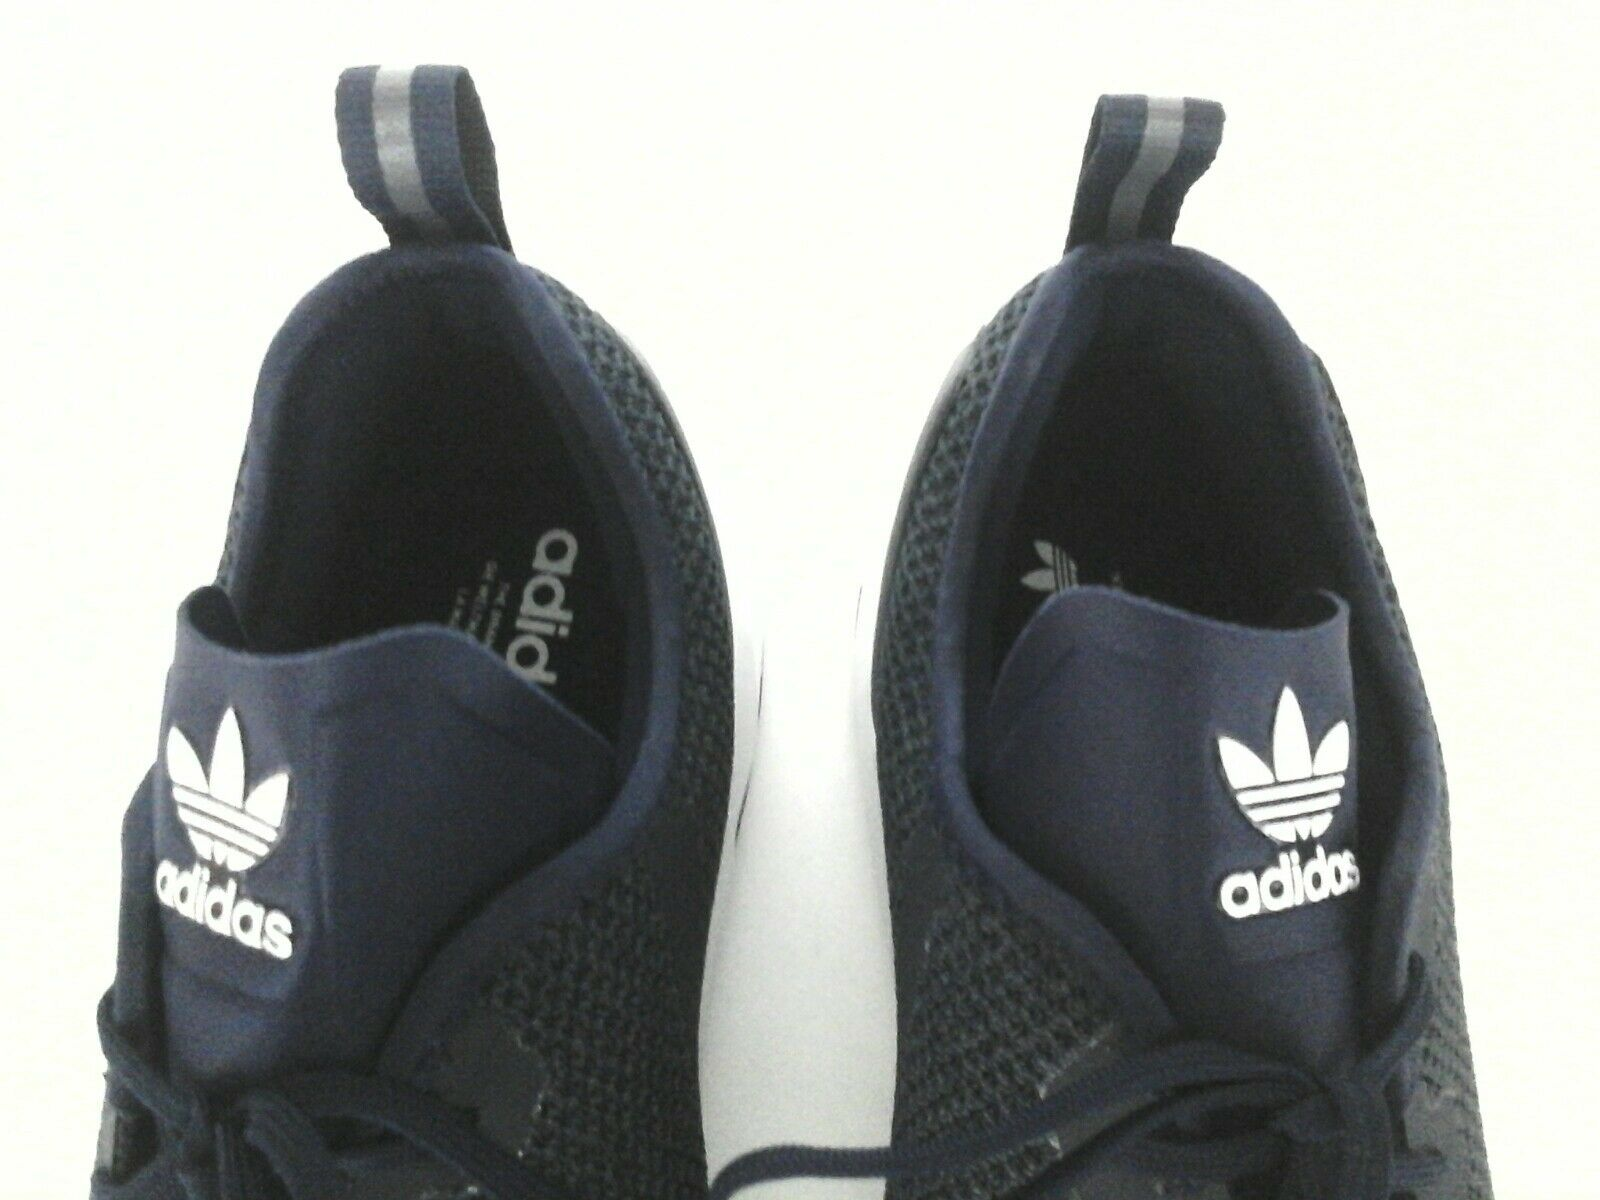 ADIDAS Shoes Blue Knit  Fashion Modern Fashion  Running Uomo   12 EU 46 2/3  120 62d49e